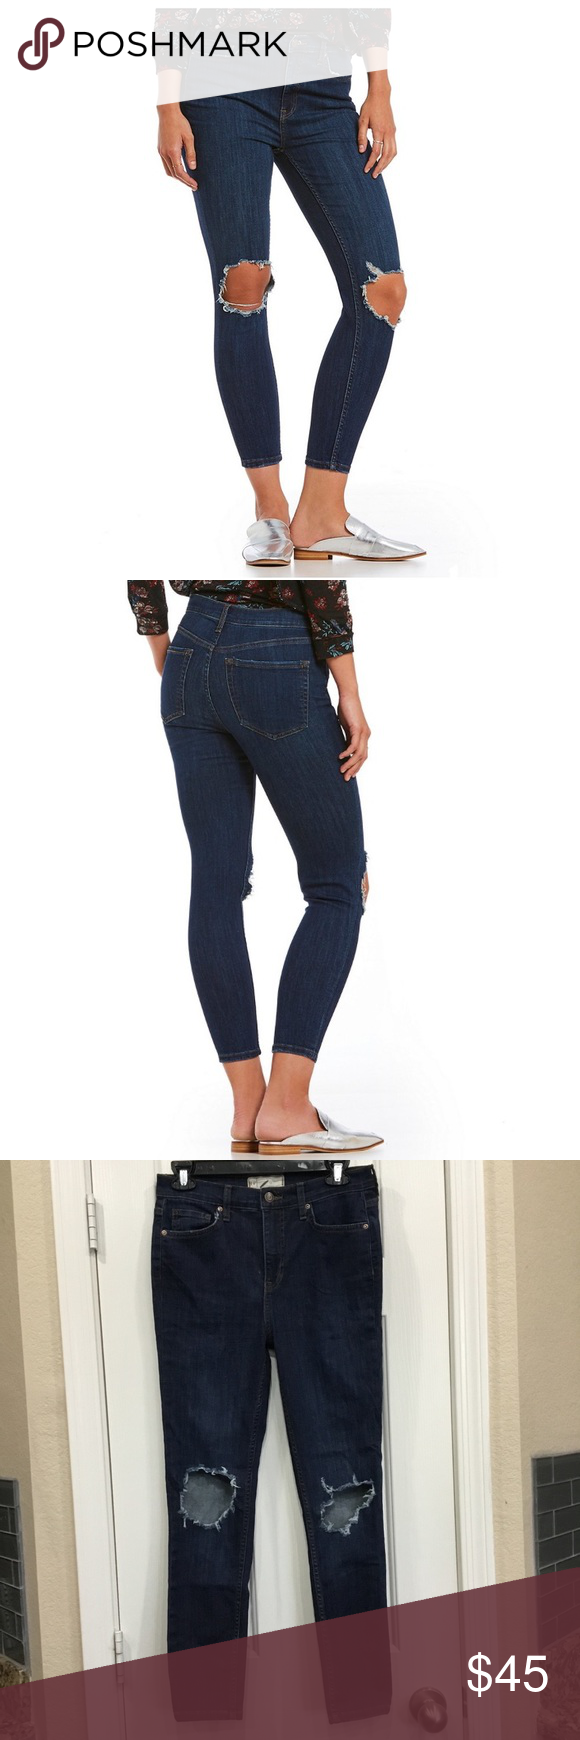 2a9d6998388 Free People We The Free Busted Skinny Jeans Super stretchy high rise  skinnies featuring busted out knees and raw edges. Ankle grazing inseam.